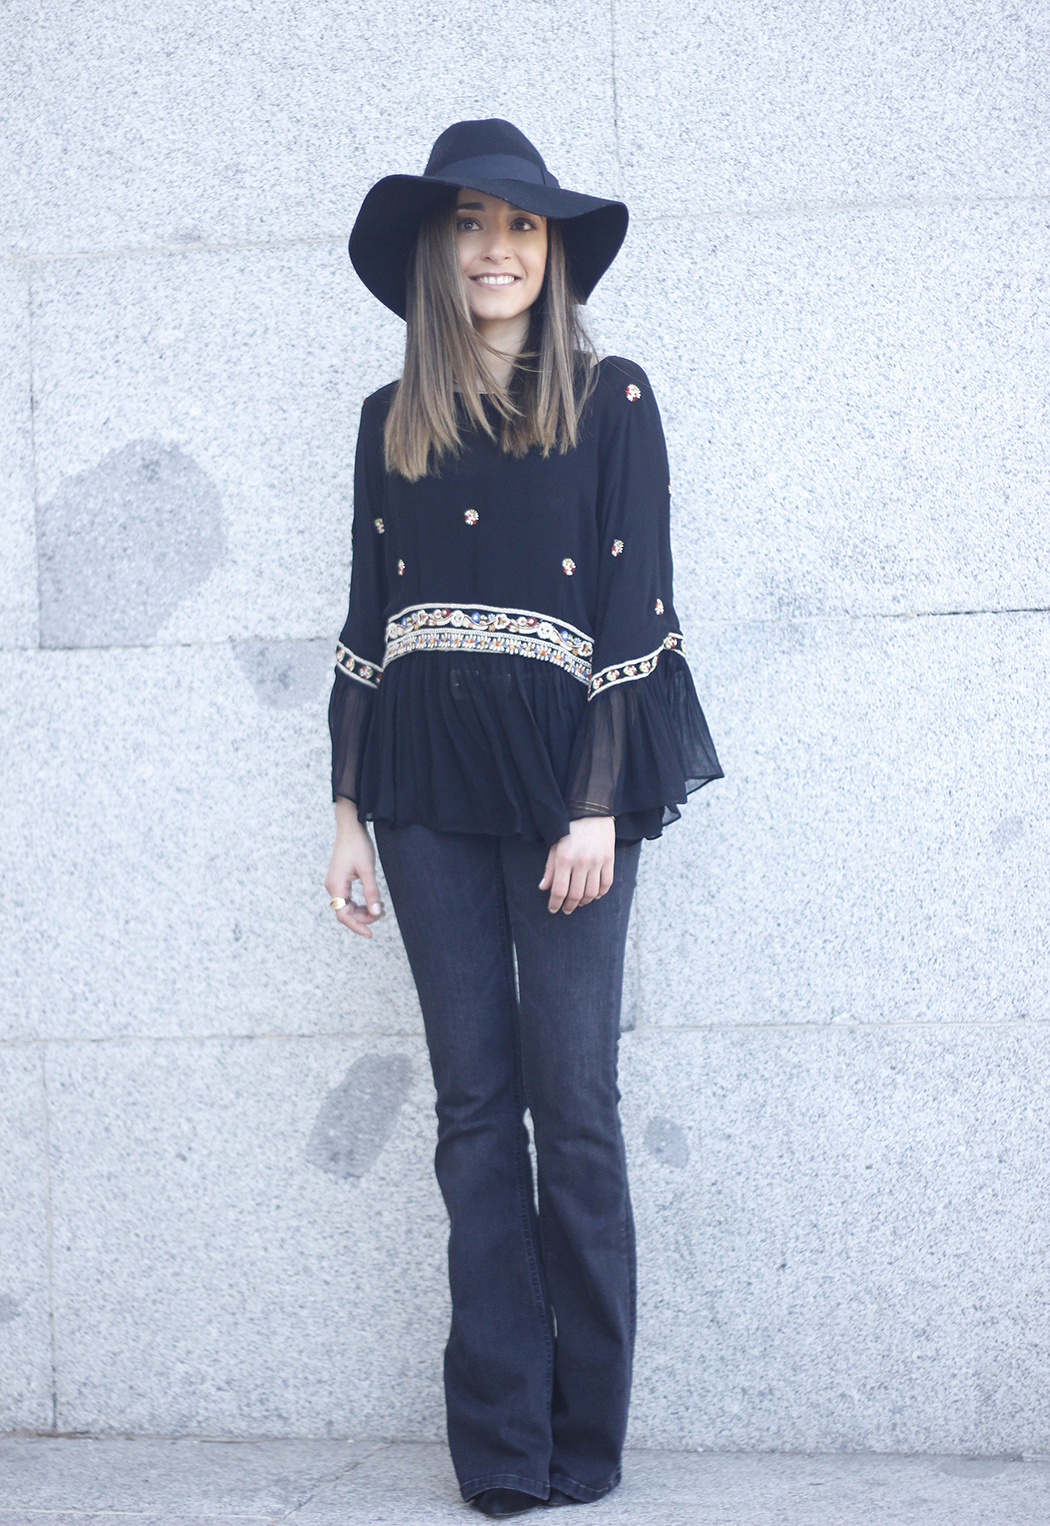 flared jeans boho blouse hat accessories outfit fashion09